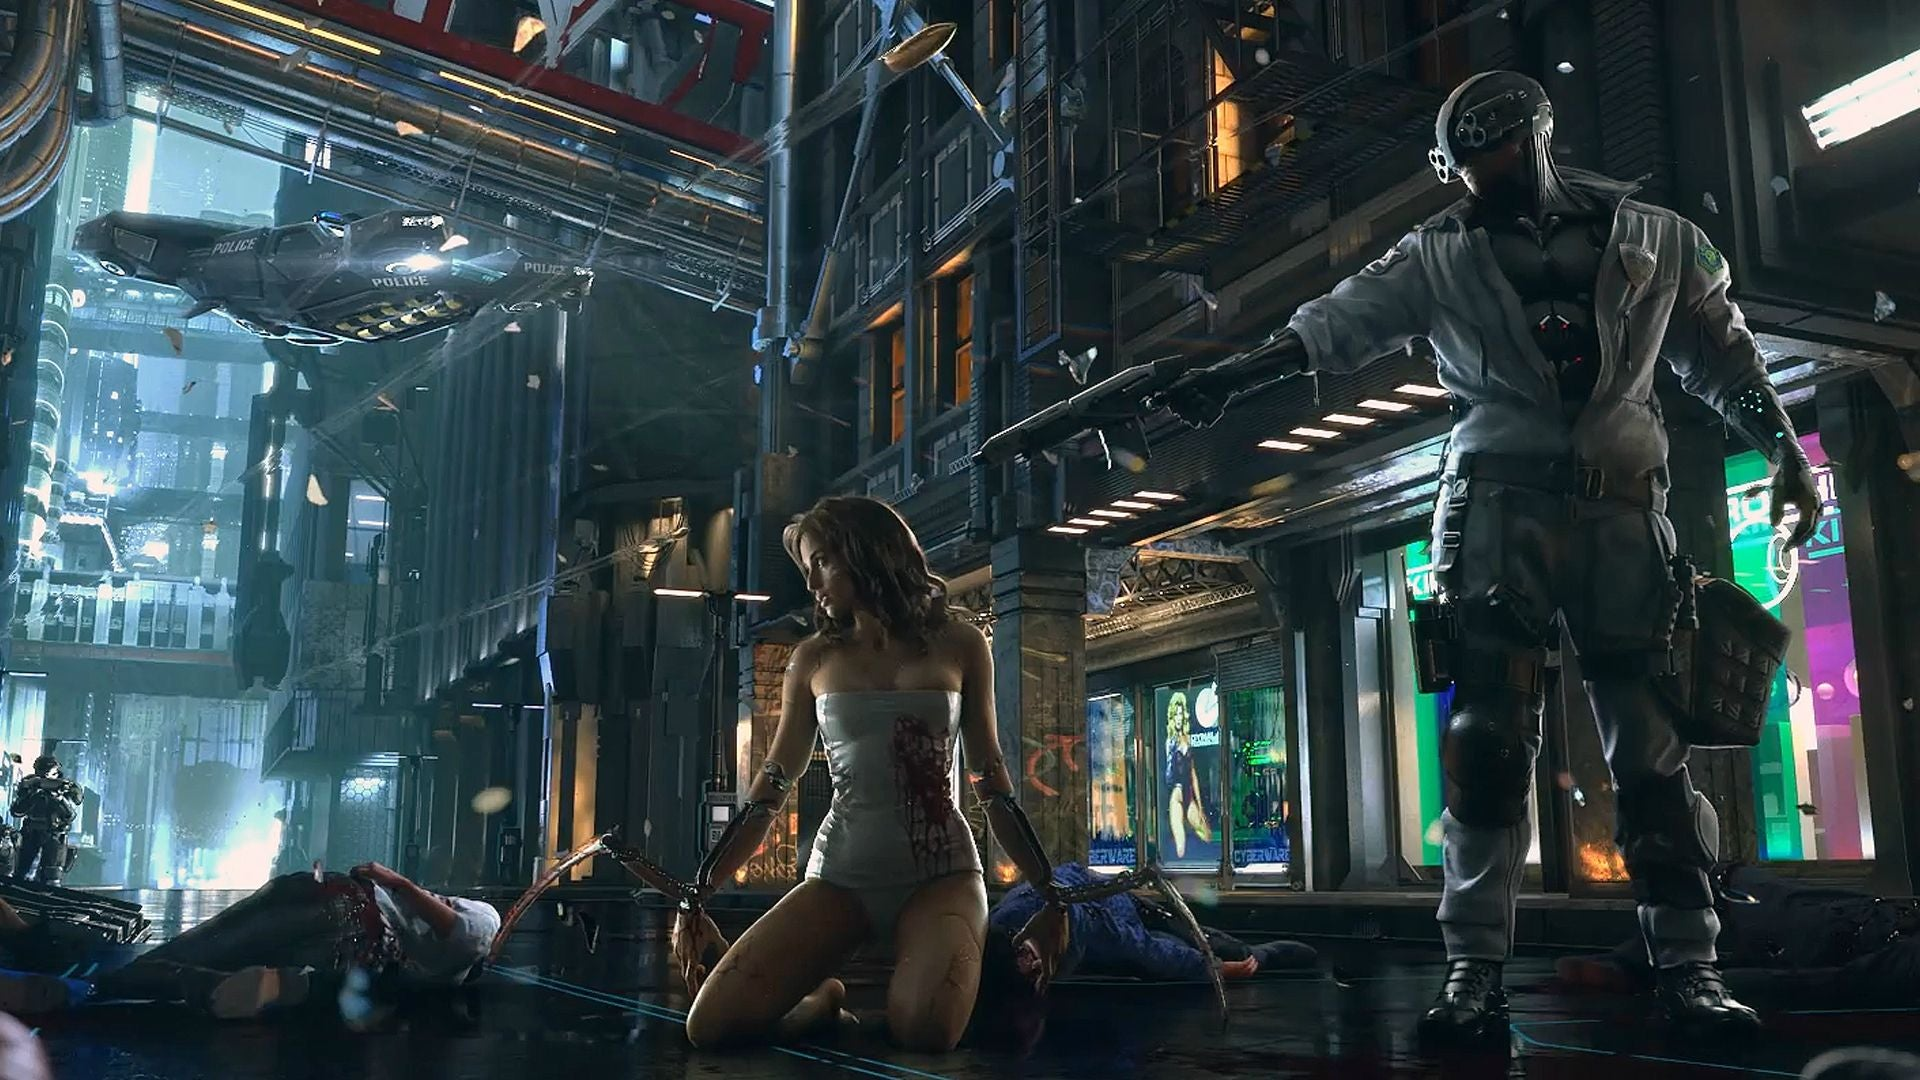 The People Making Cyberpunk 2077 Would Like To Correct A Misconception About Game Development